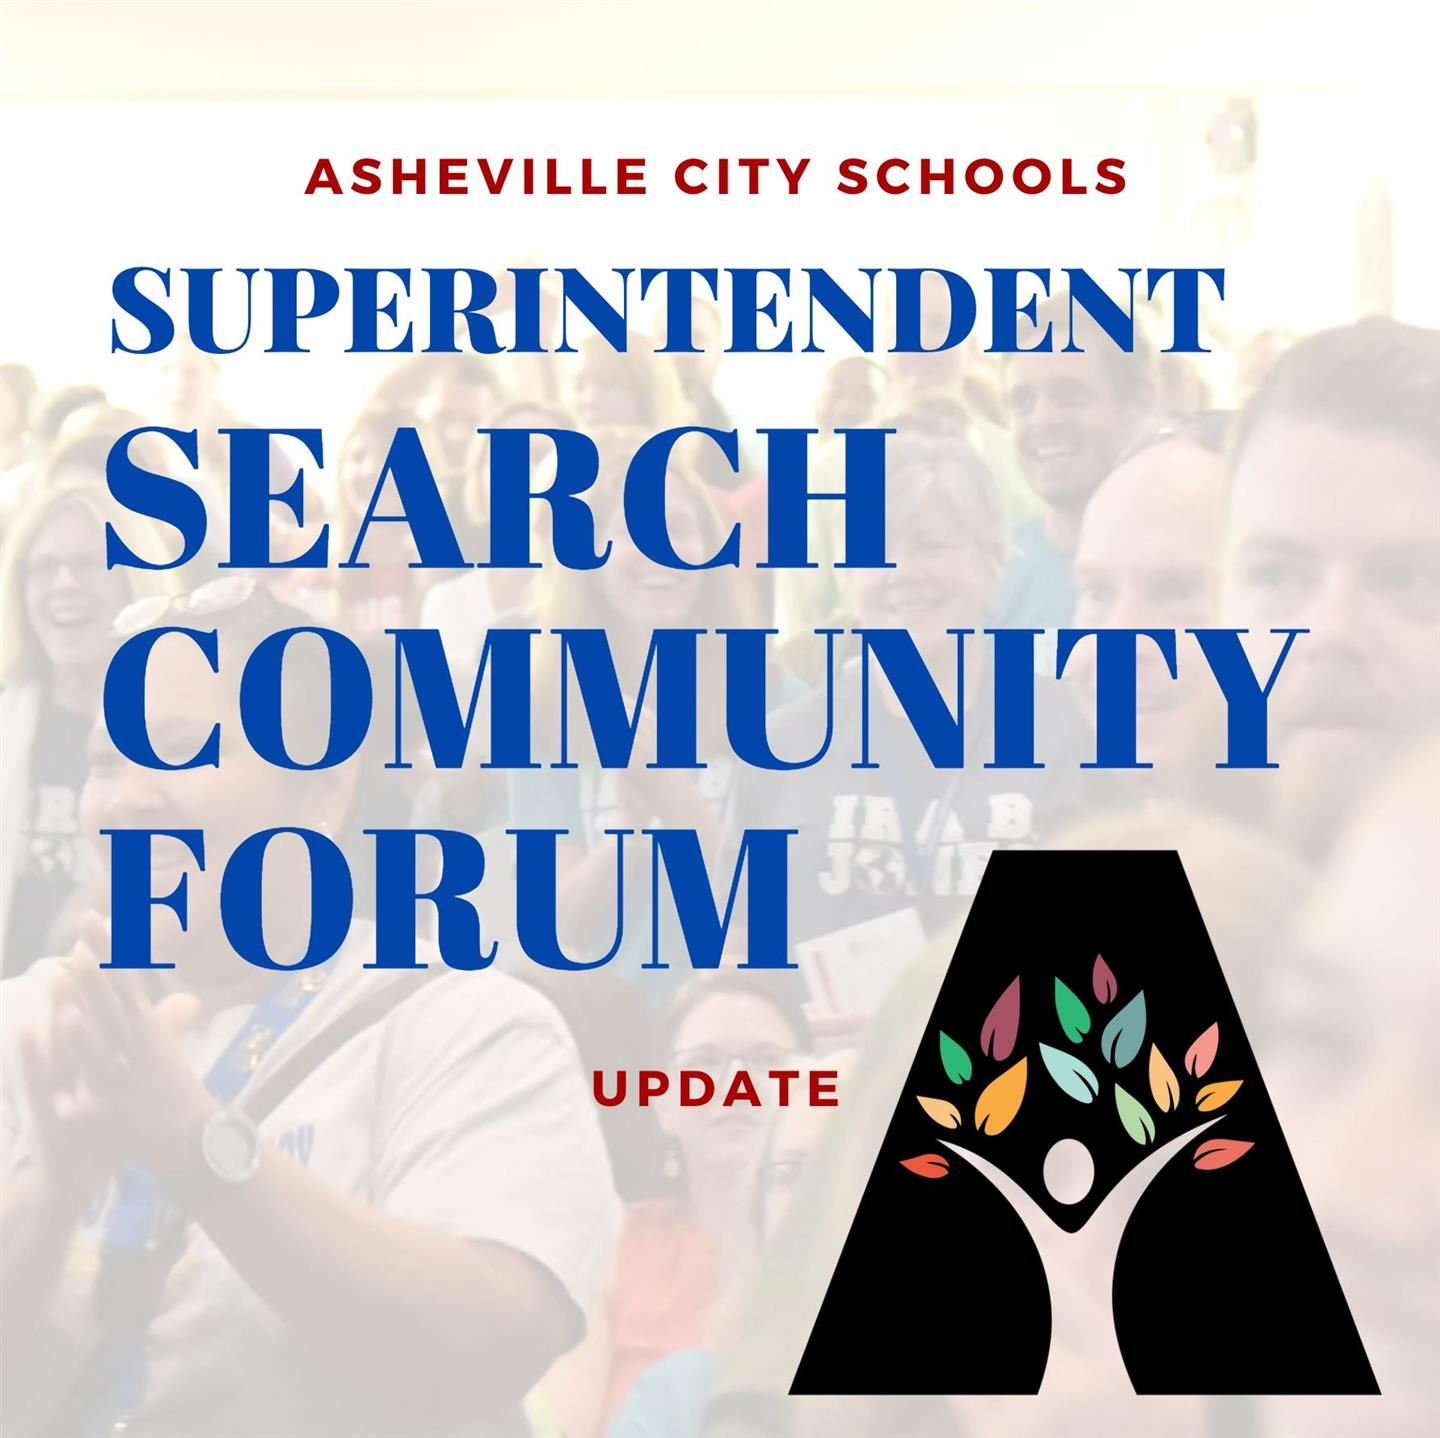 Superintendent Search Community Forums  - UPDATE